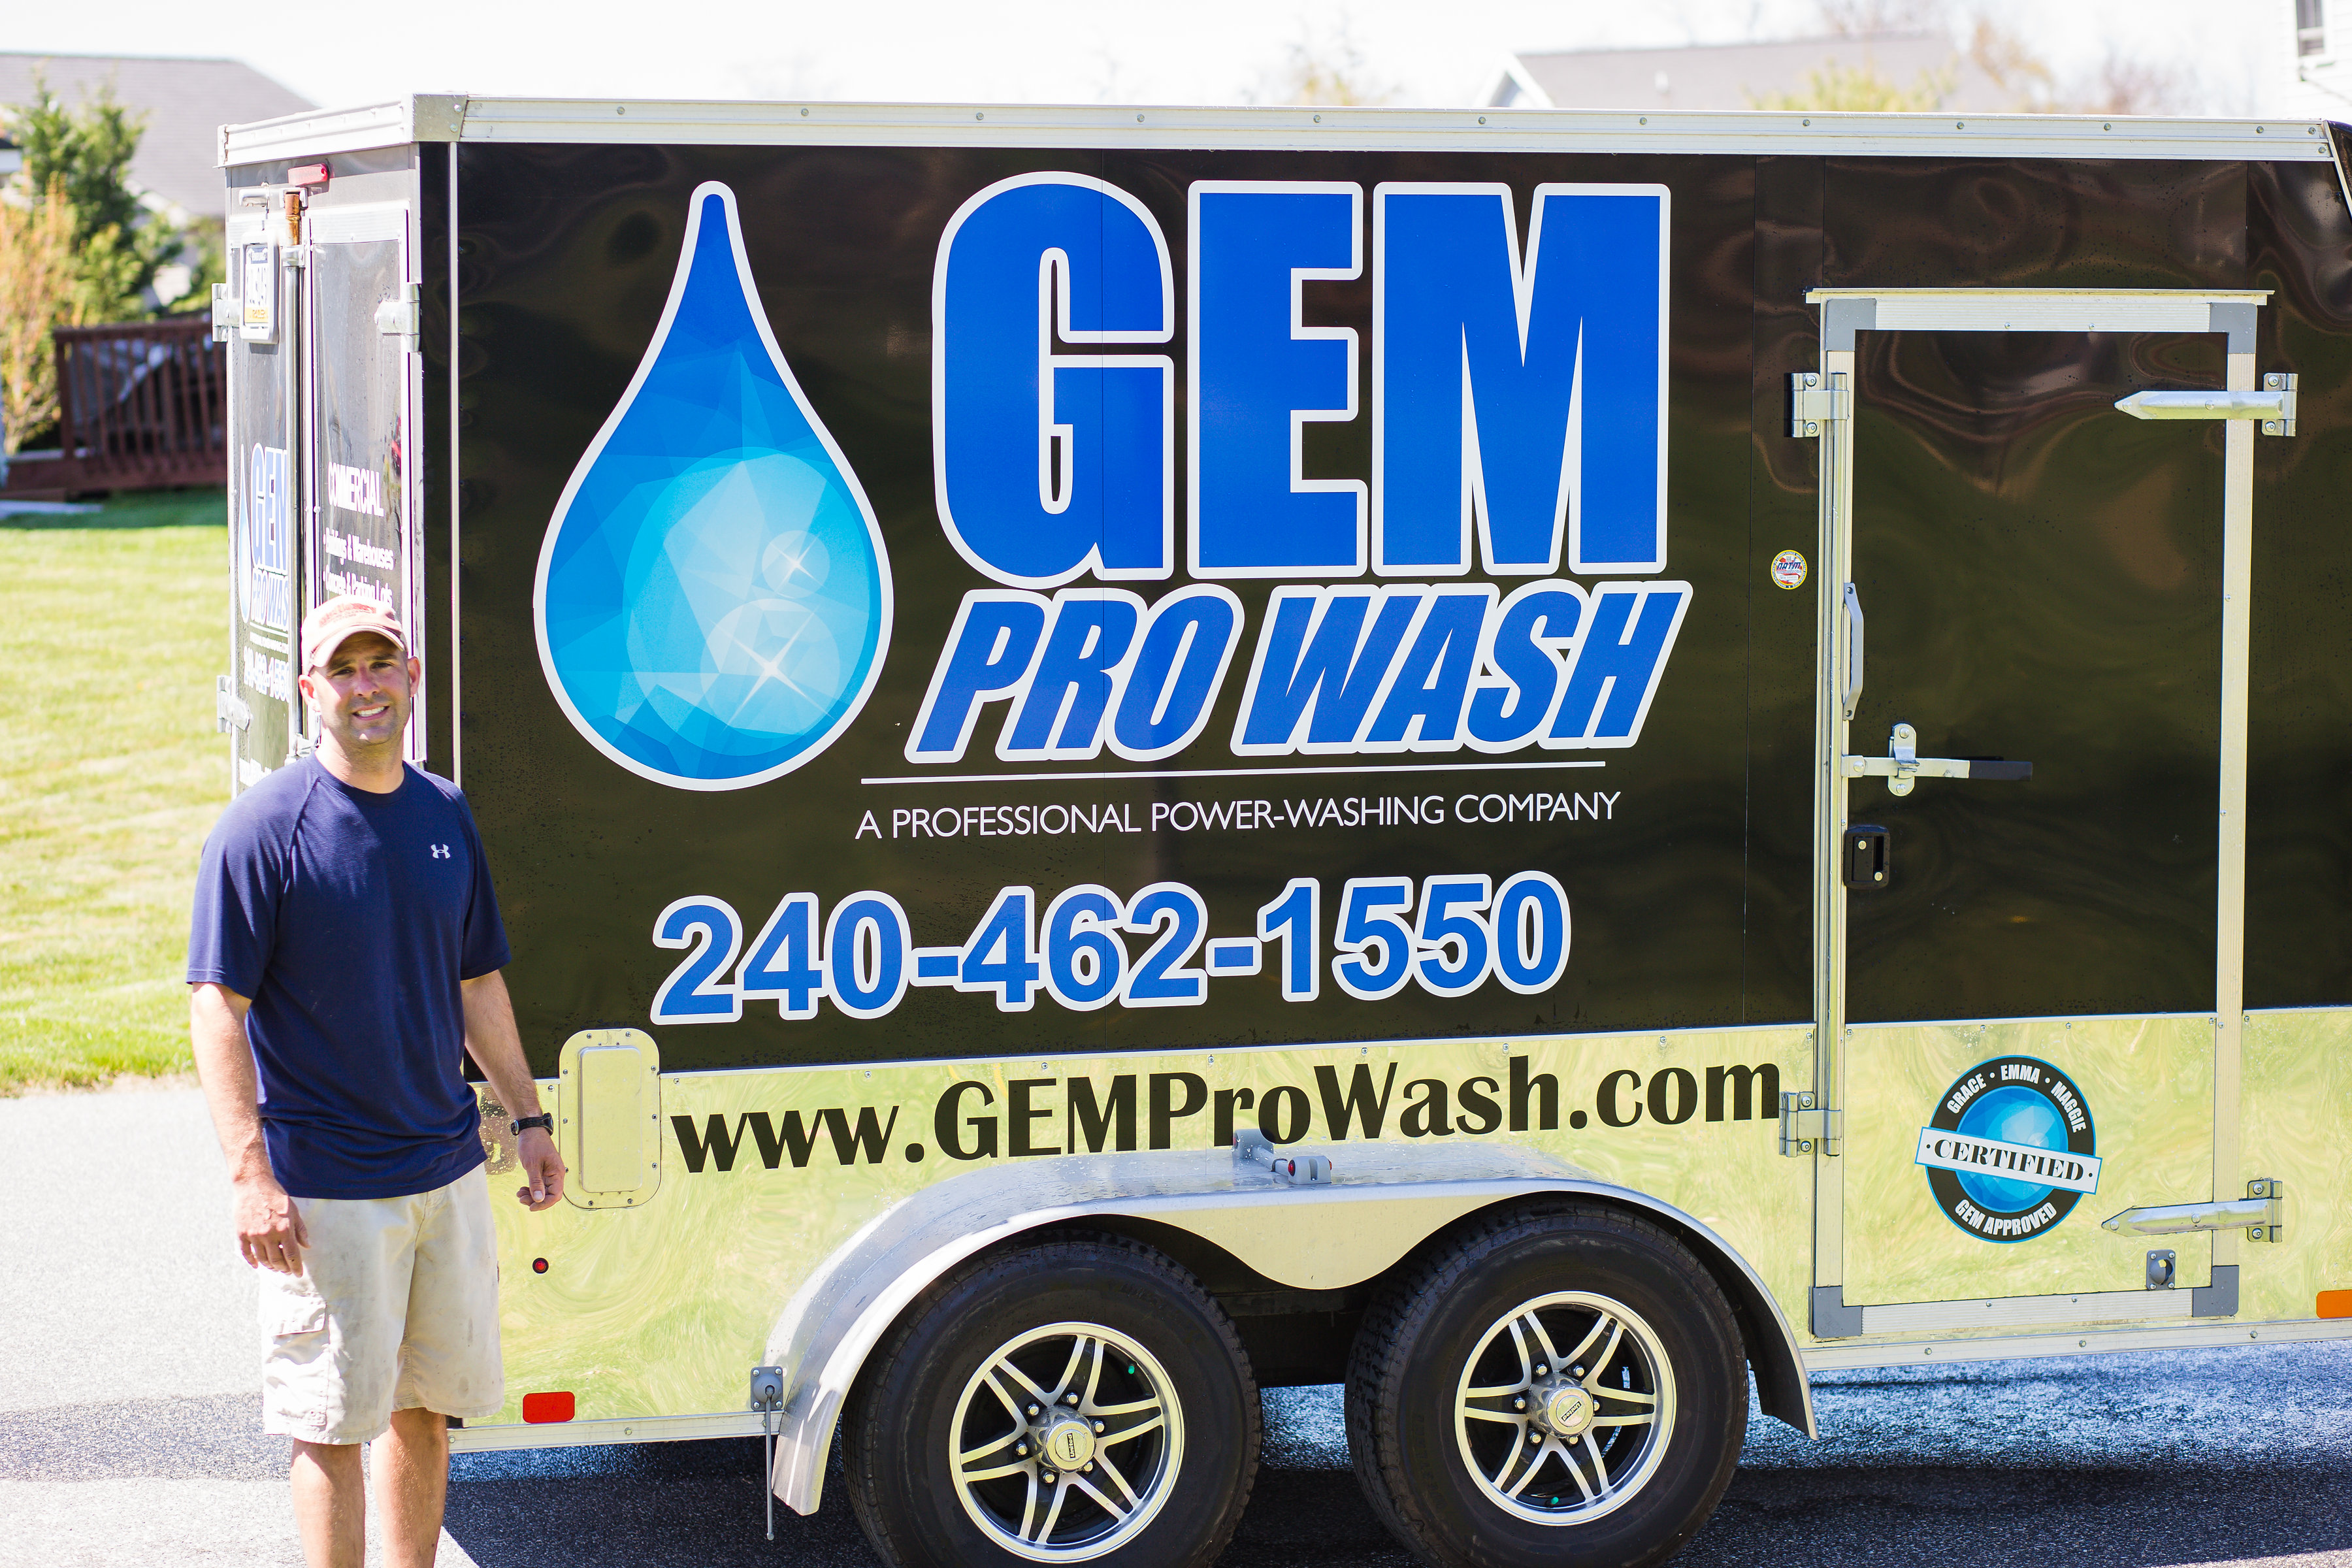 Gem Pro Wash | Soft Wash Roof Contractor in Martinsburg WV